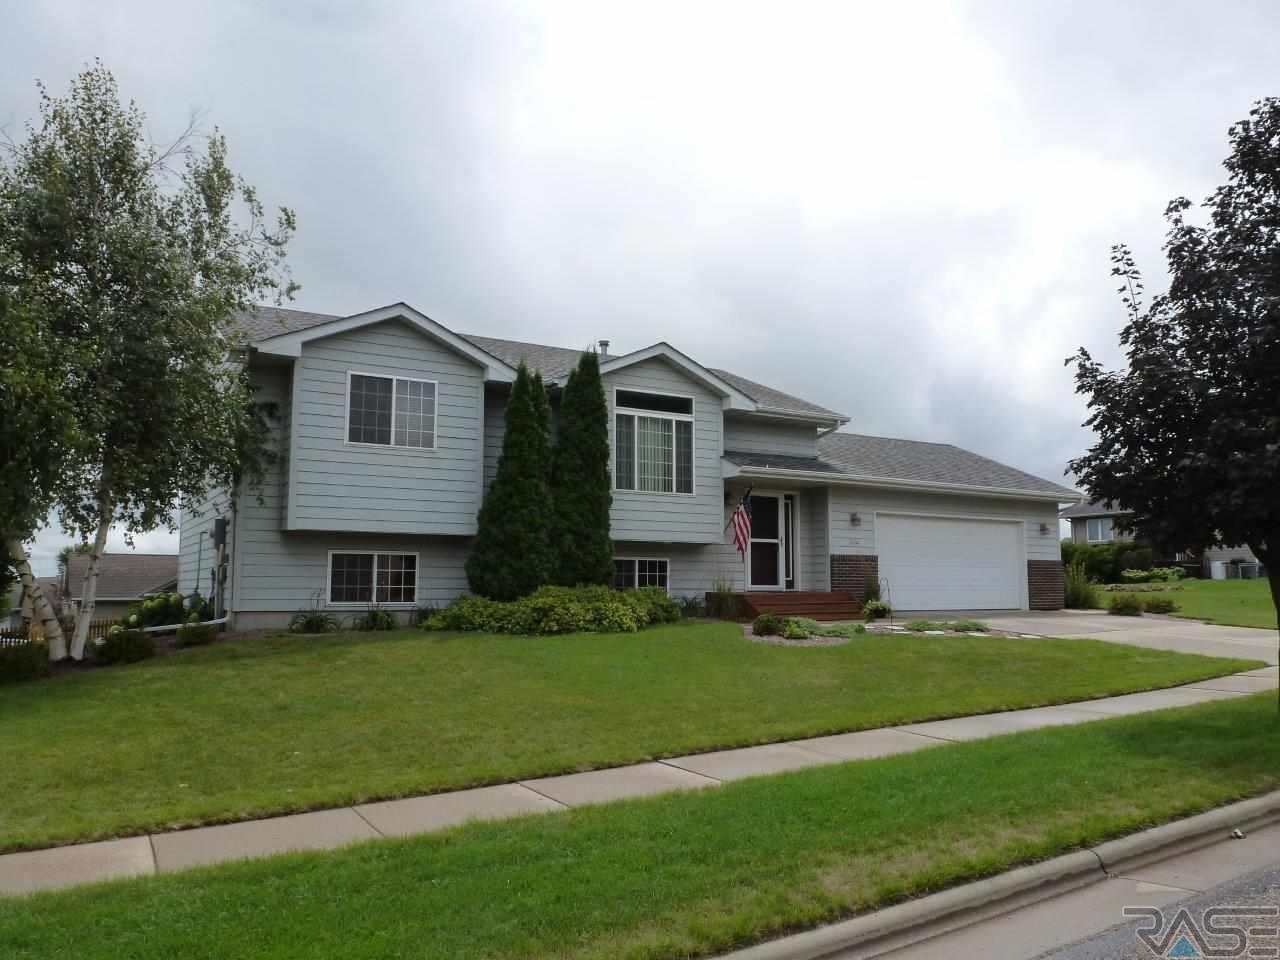 504 N Providence Ln, SIOUX FALLS